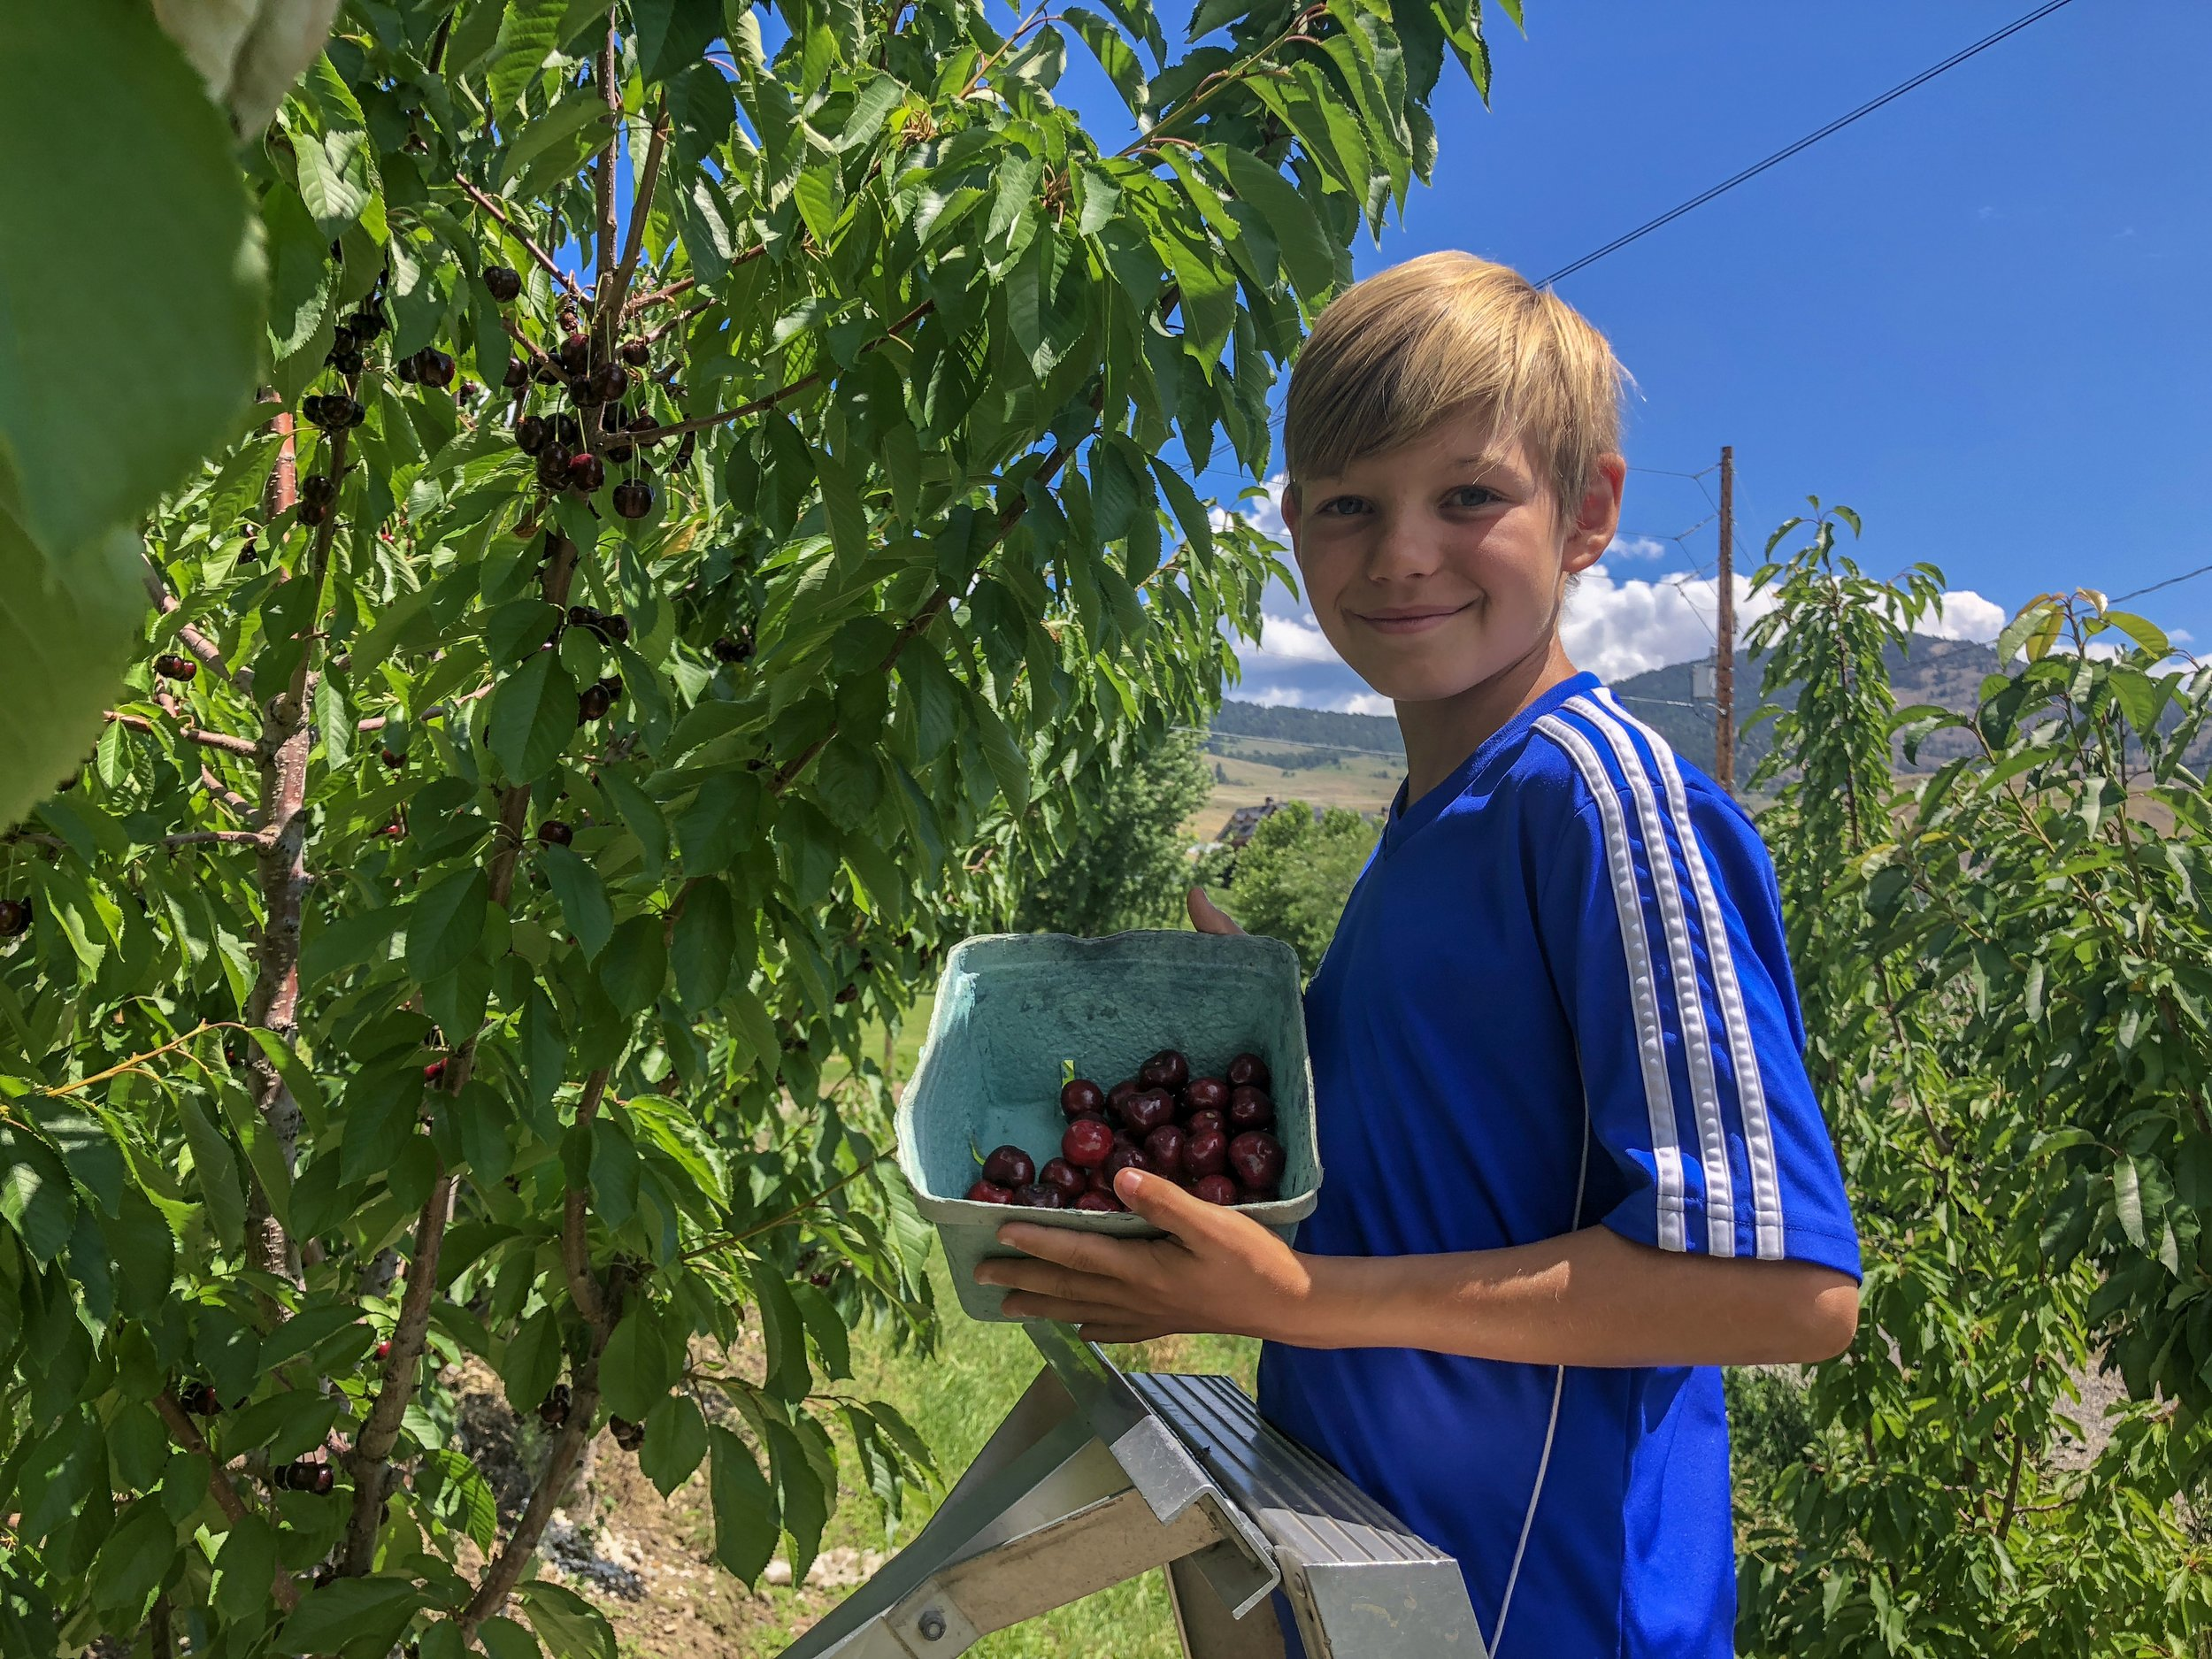 Layton showing off his container that's starting to fill up with tasty Okanagan cherries.